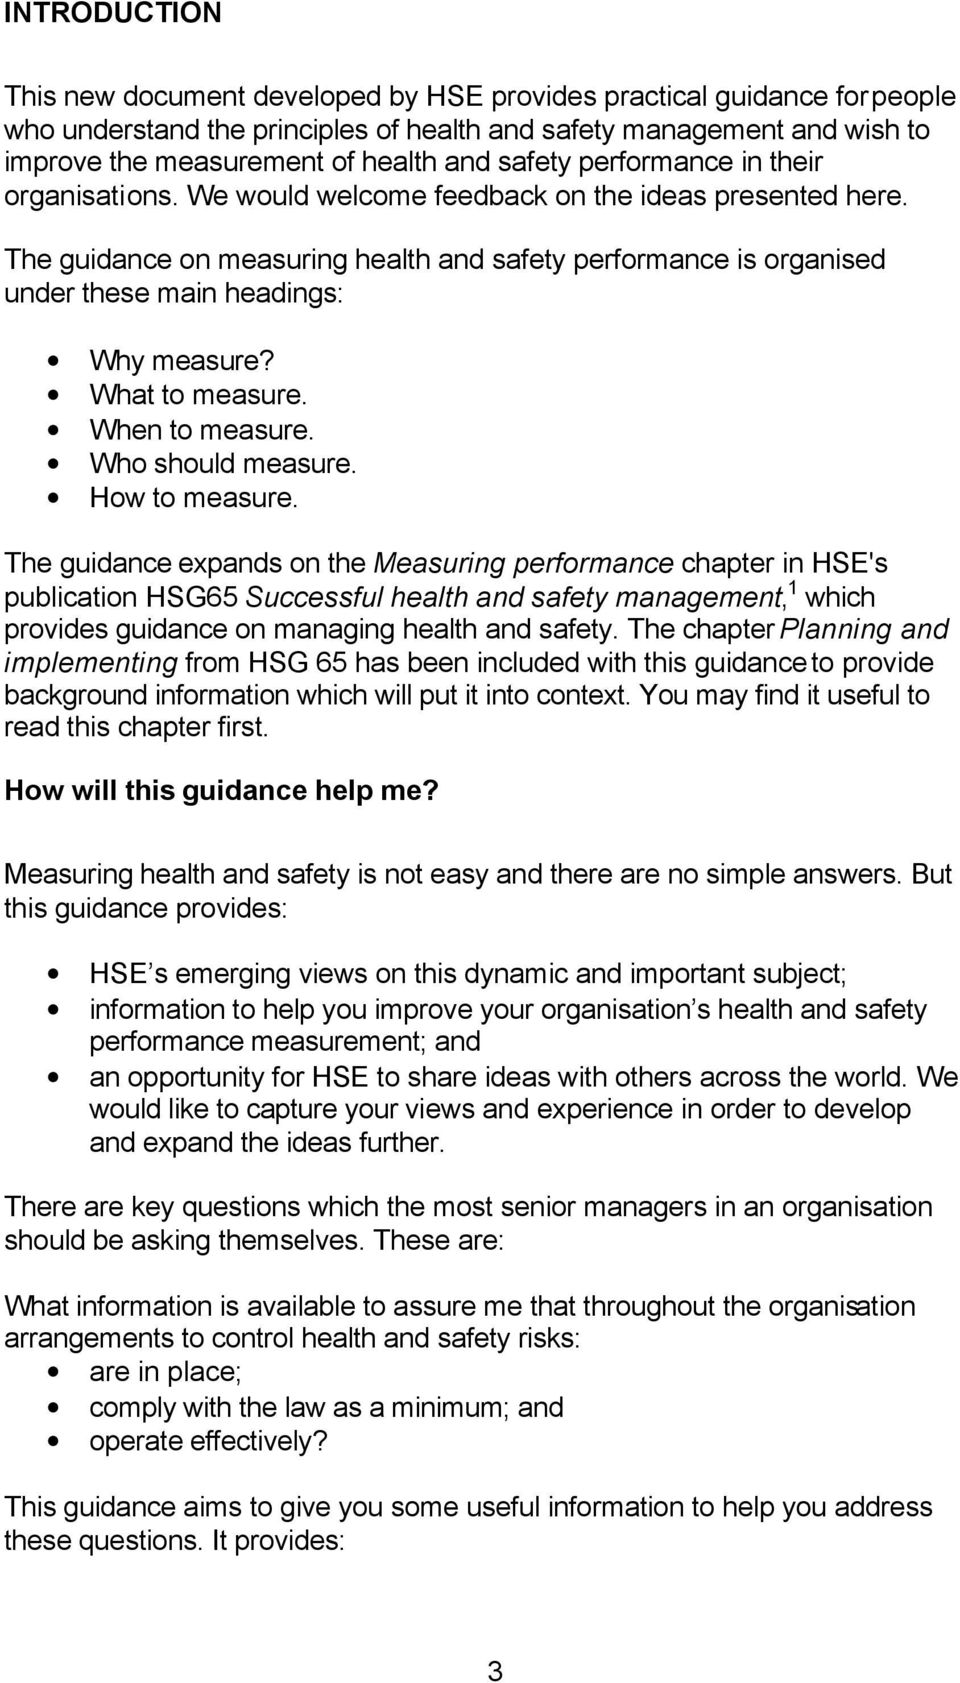 The guidance on measuring health and safety performance is organised under these main headings: Why measure? What to measure. When to measure. Who should measure. How to measure.